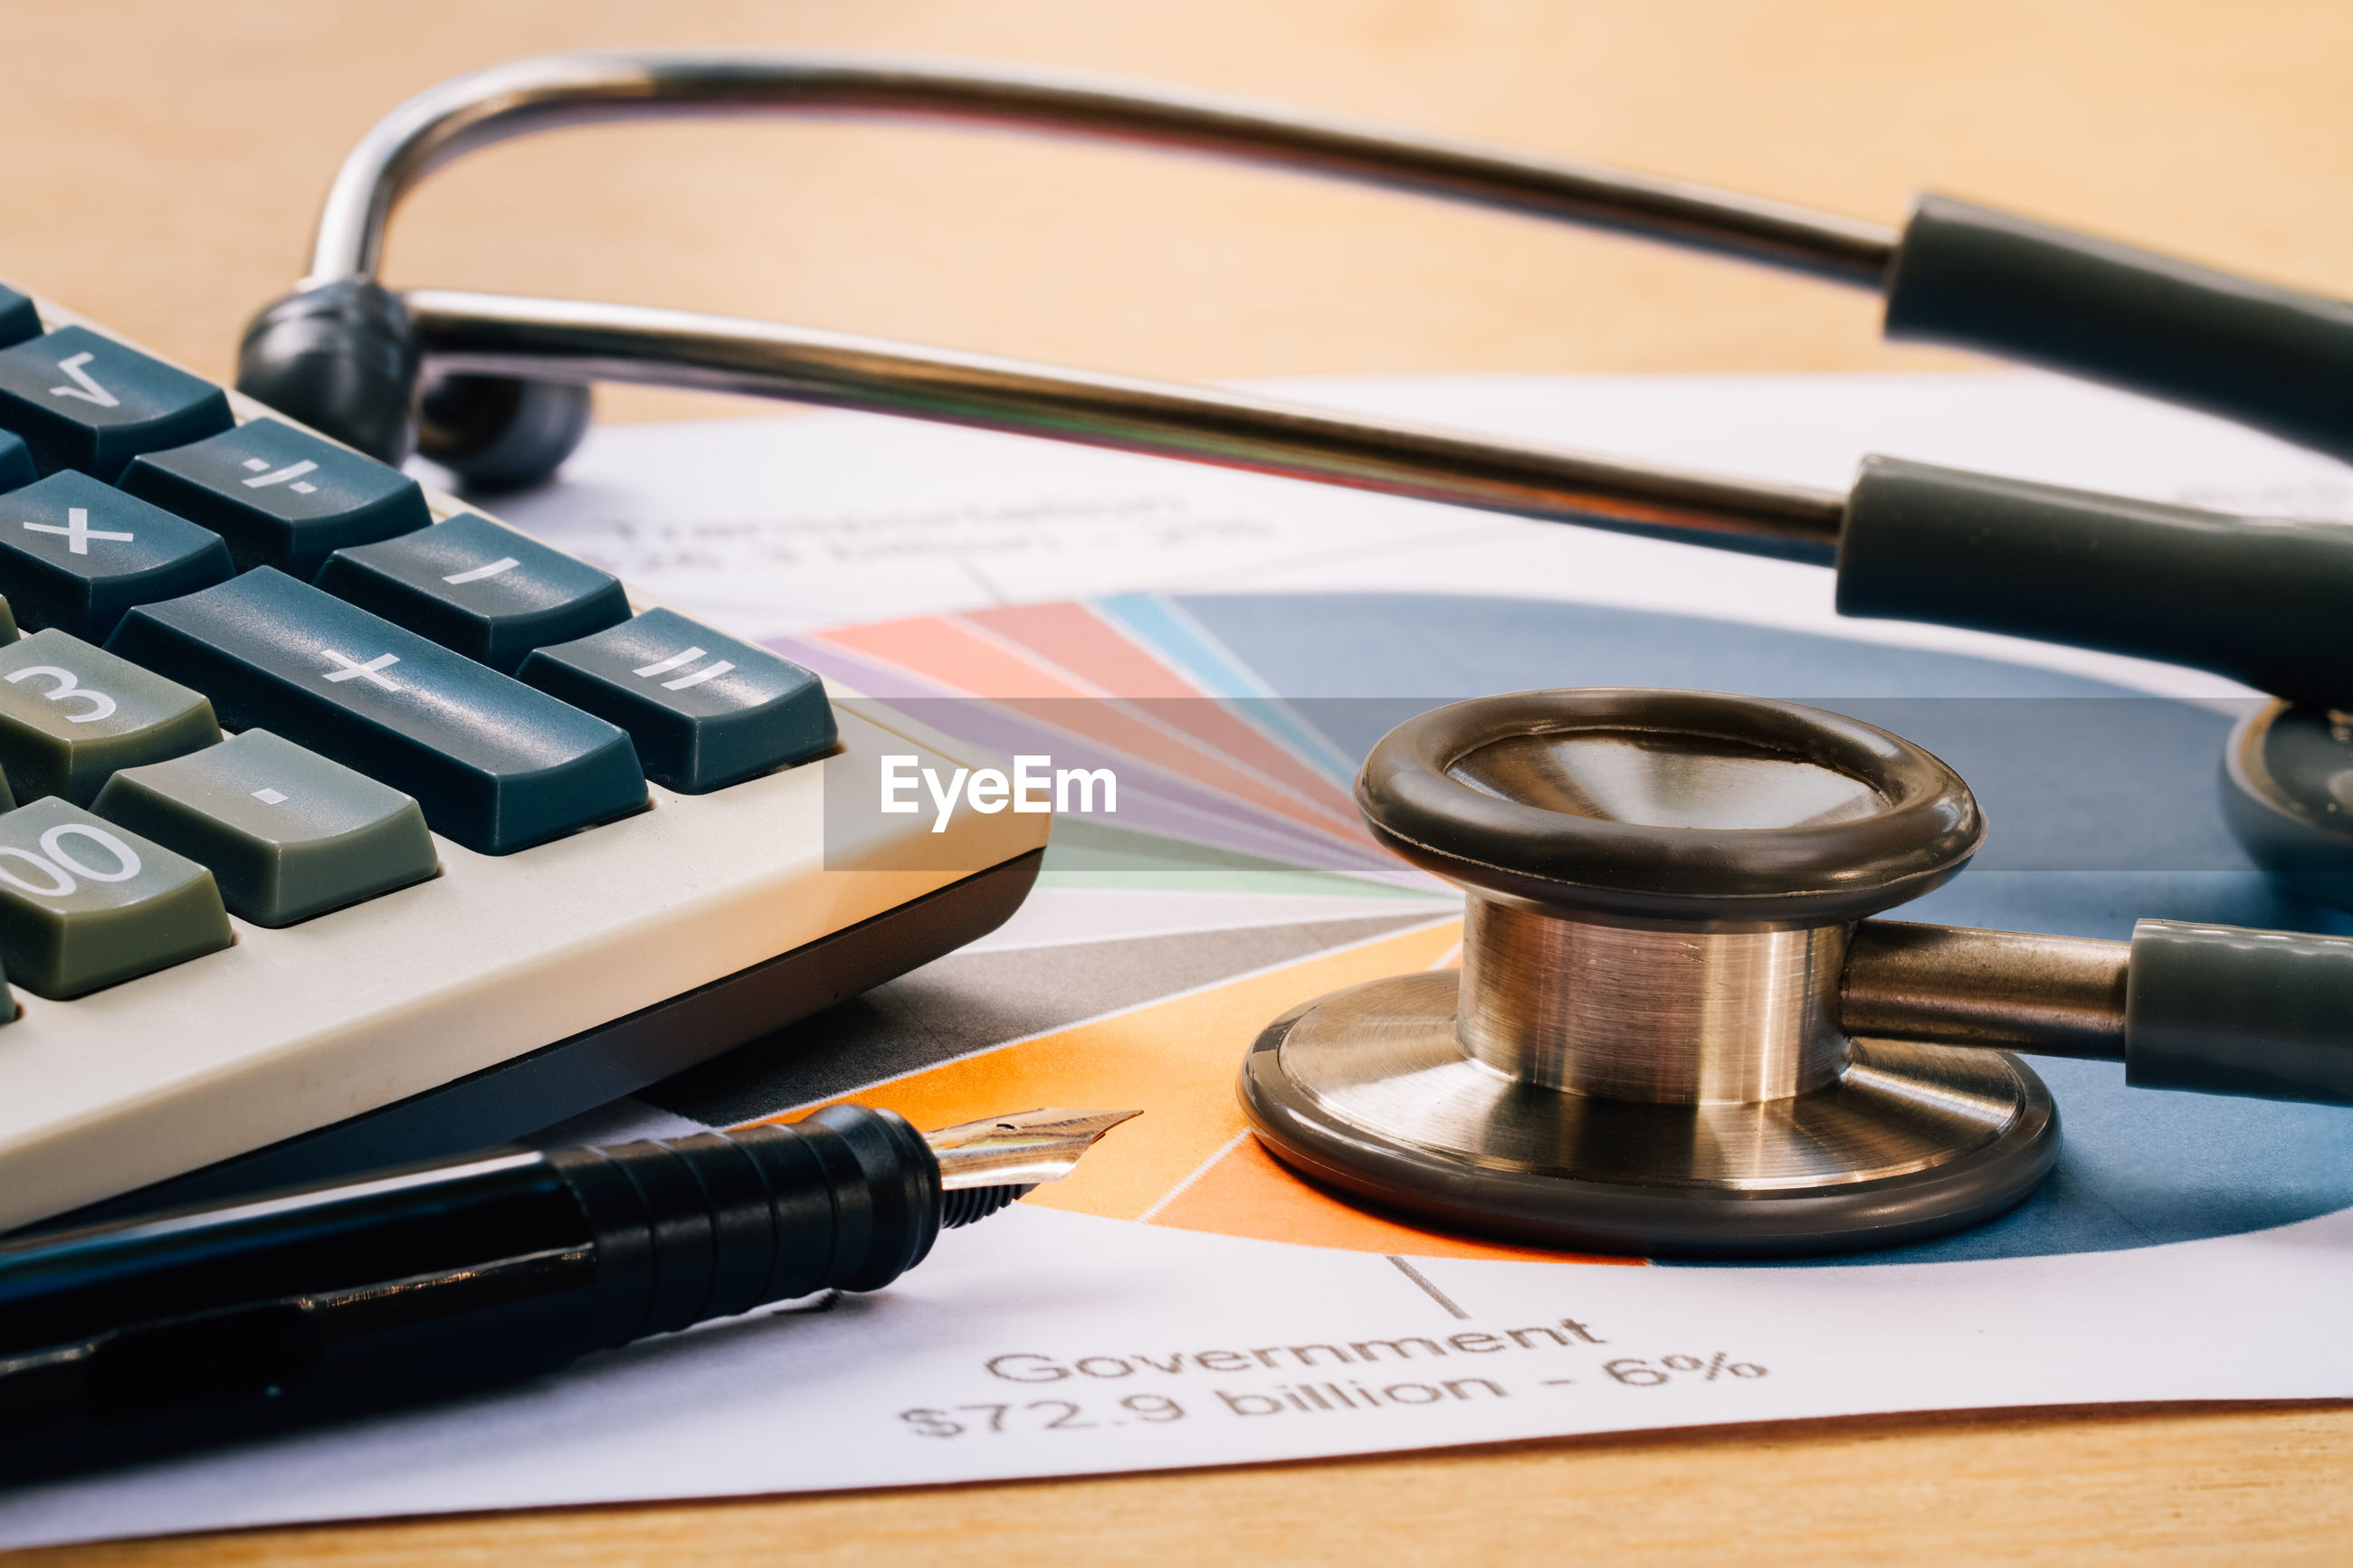 Close-up of stethoscope with calculator and document on table